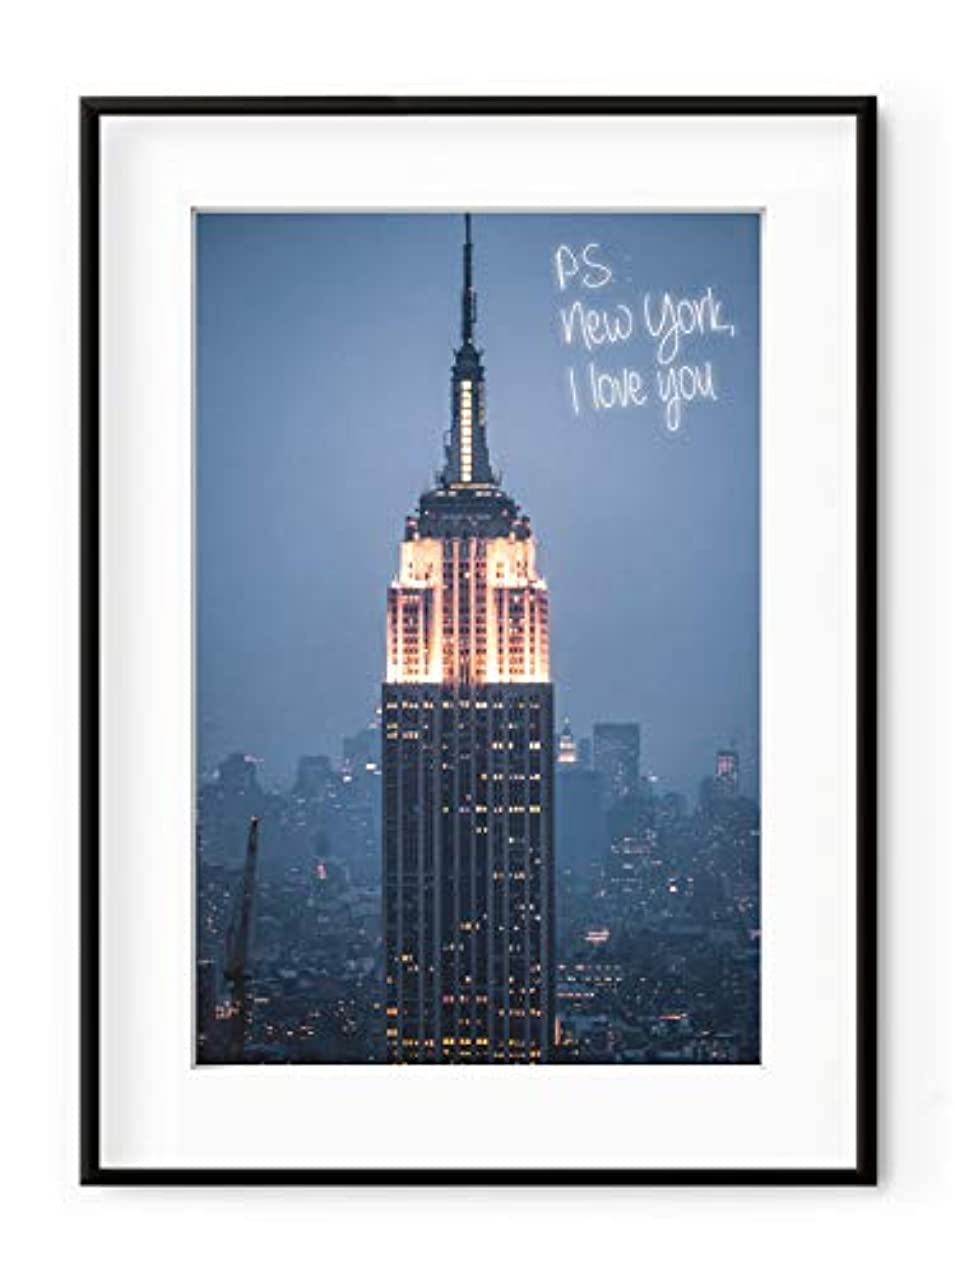 PS: New York I Love You, White Lacquer Wooden Frame, with Mount, Multicolored, 50x70